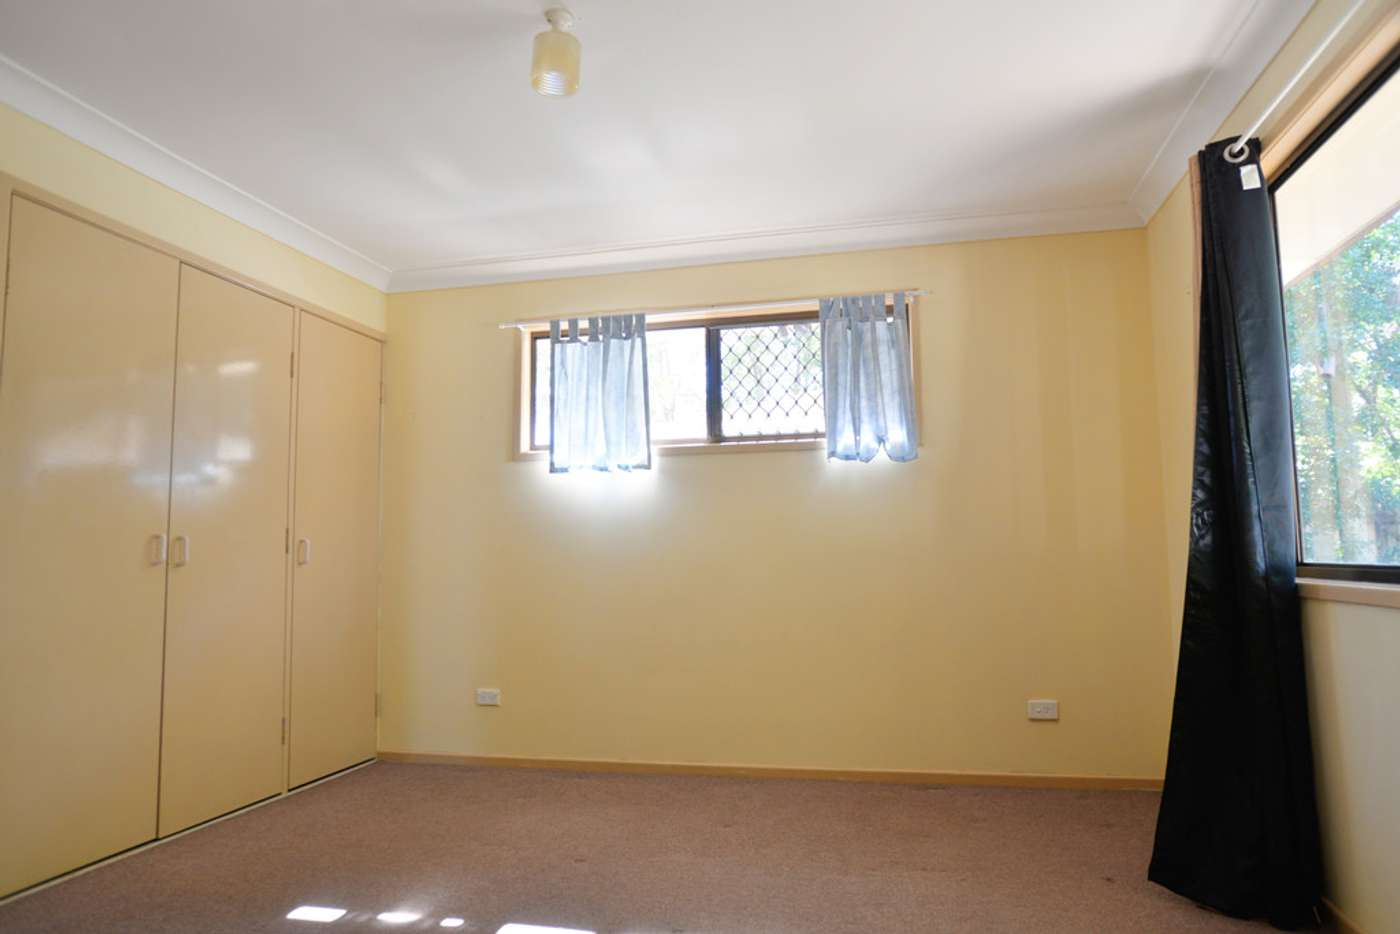 Fifth view of Homely house listing, 58 Trulson Drive, Crestmead QLD 4132